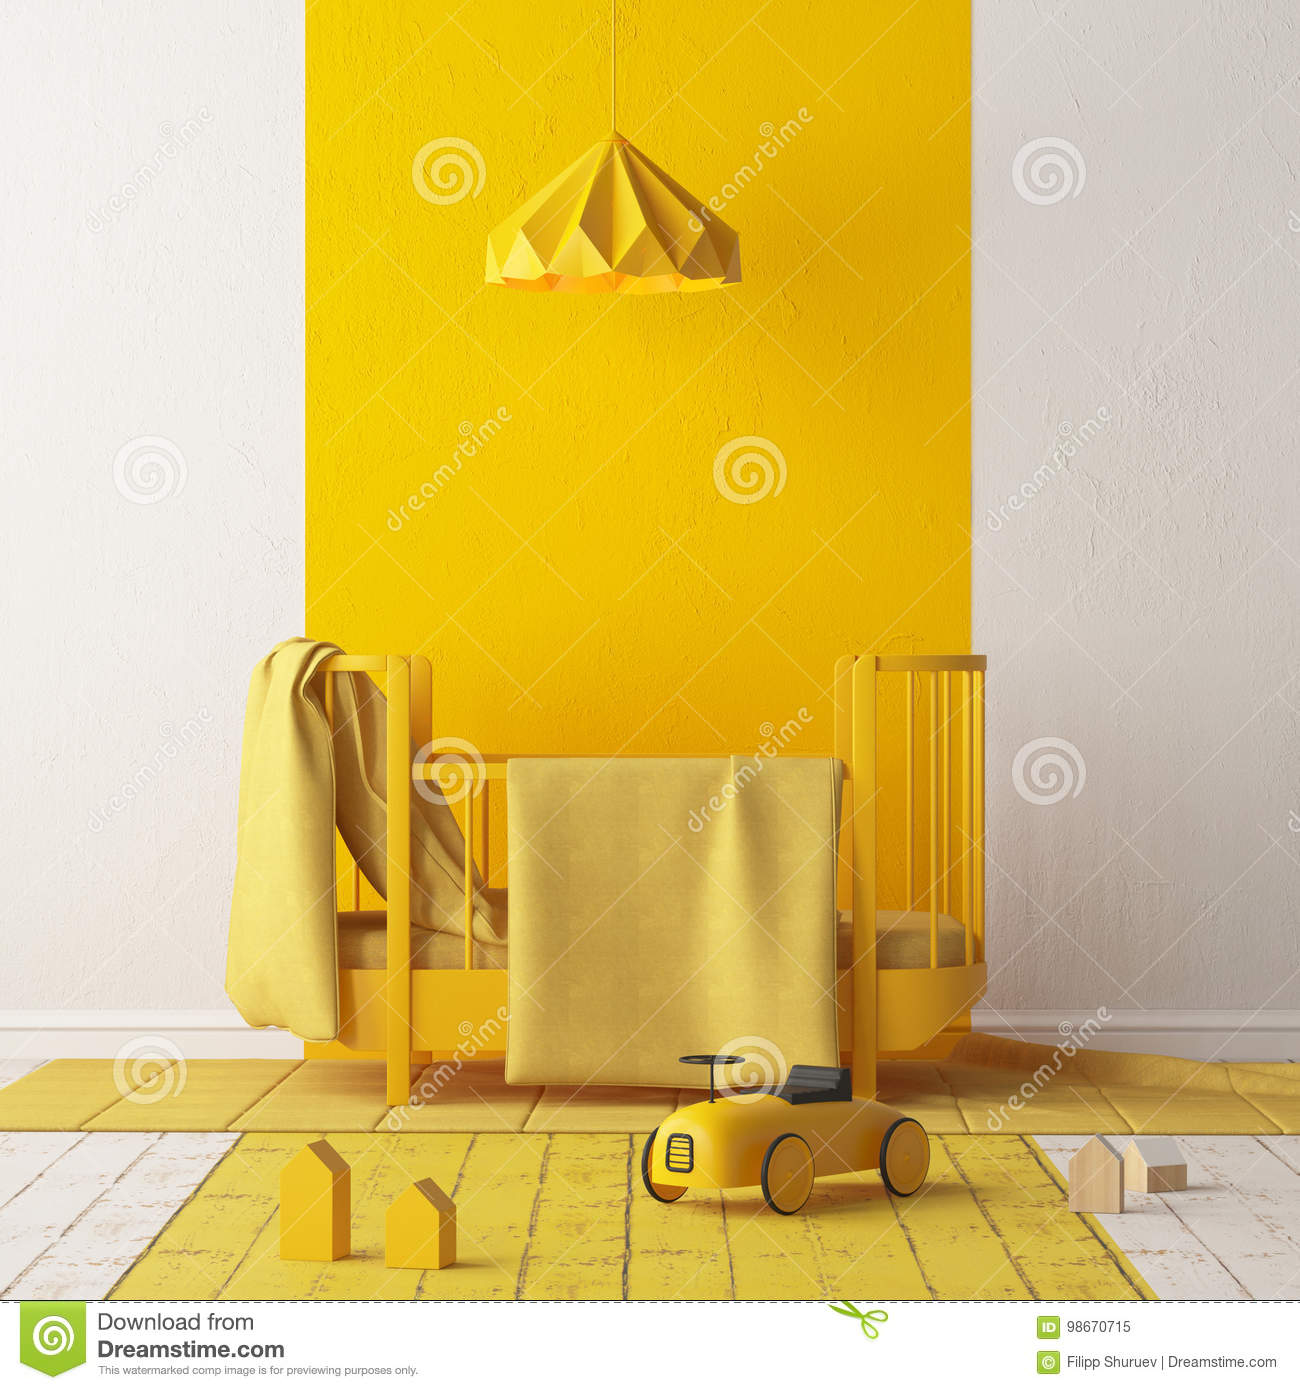 Mock Up Of A Children S Bedroom In A Locally Yellow Color